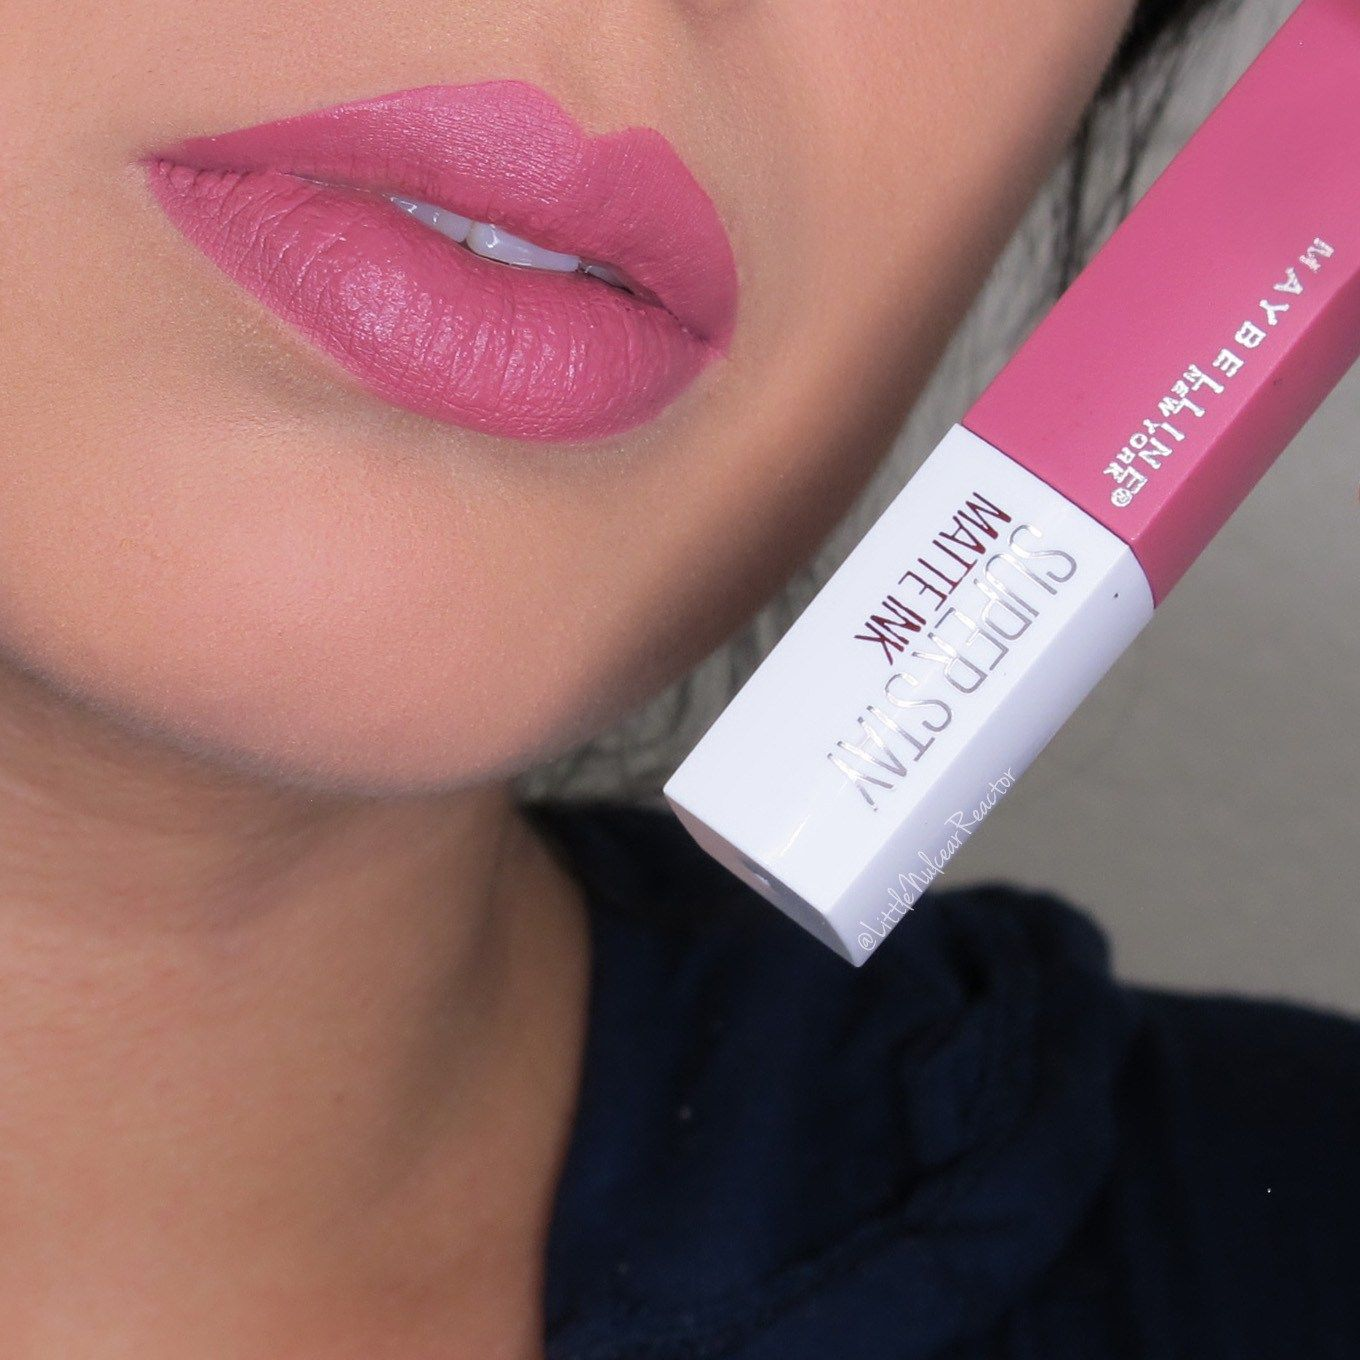 Maybelline Superstay Mattw Ink Lipstick Review Maybelline